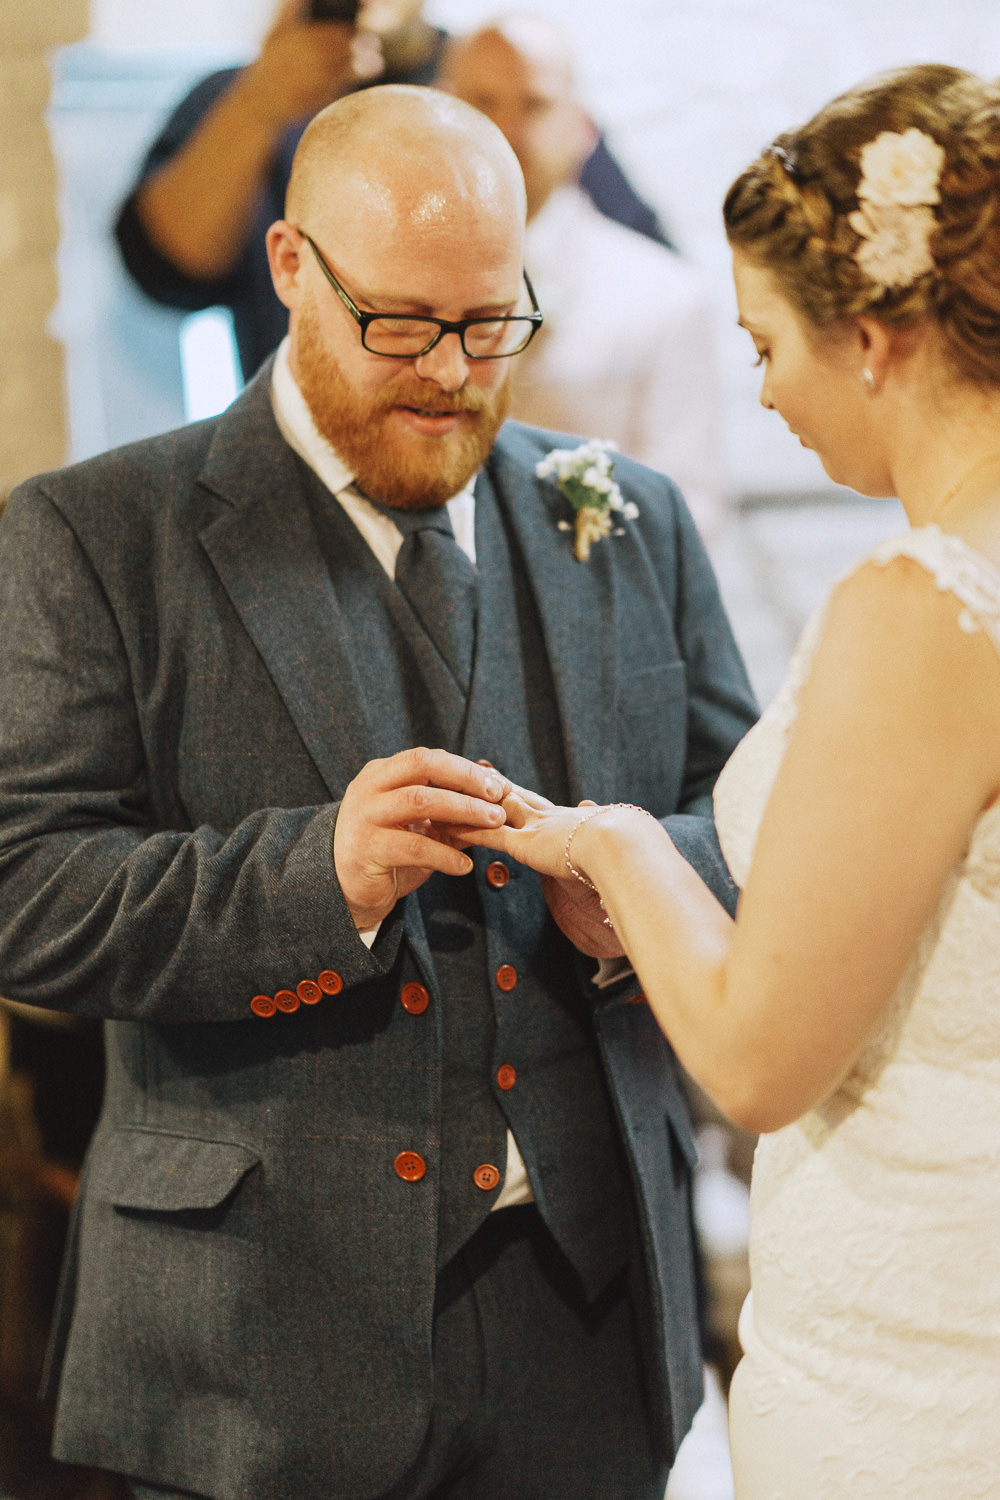 bearded groom putting the ring on his bride